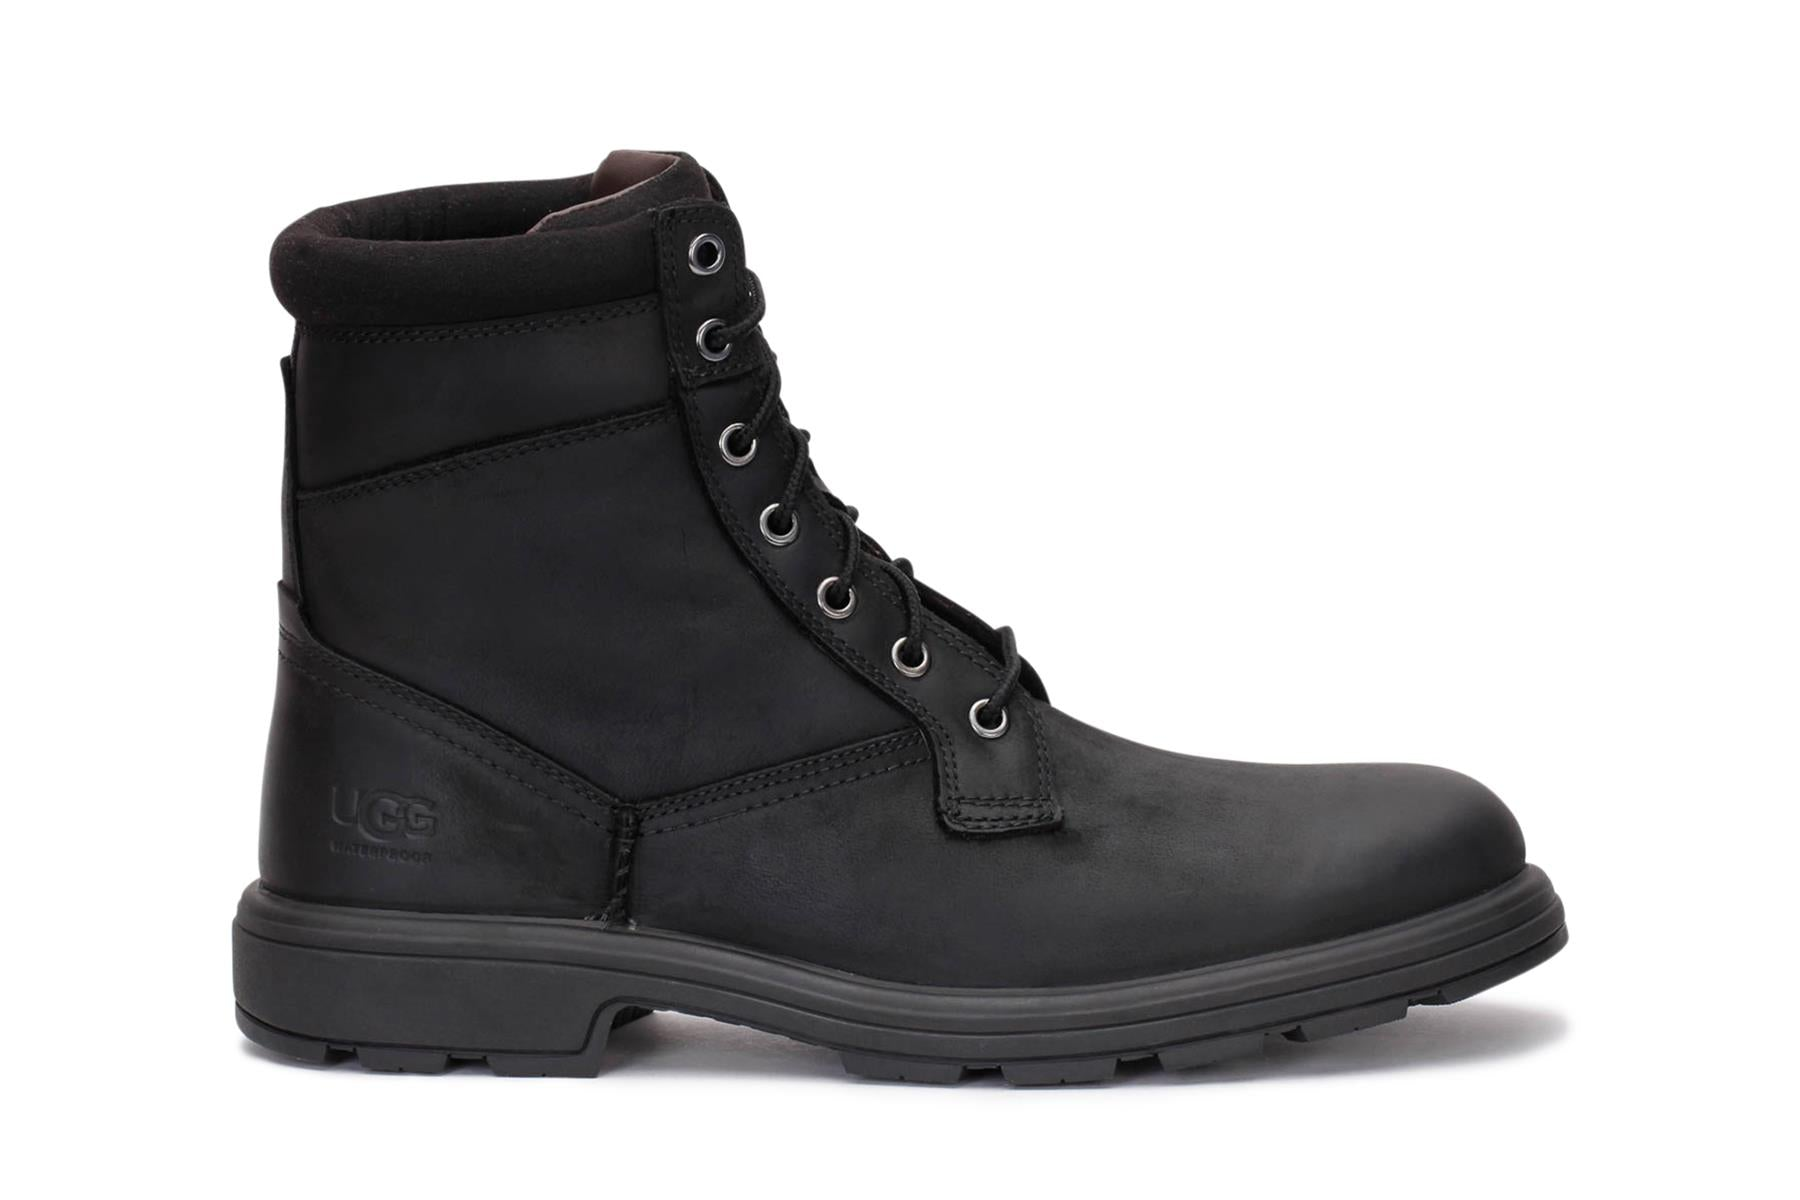 ugg-mens-biltmore-workboot-waterproof-black-boots-main